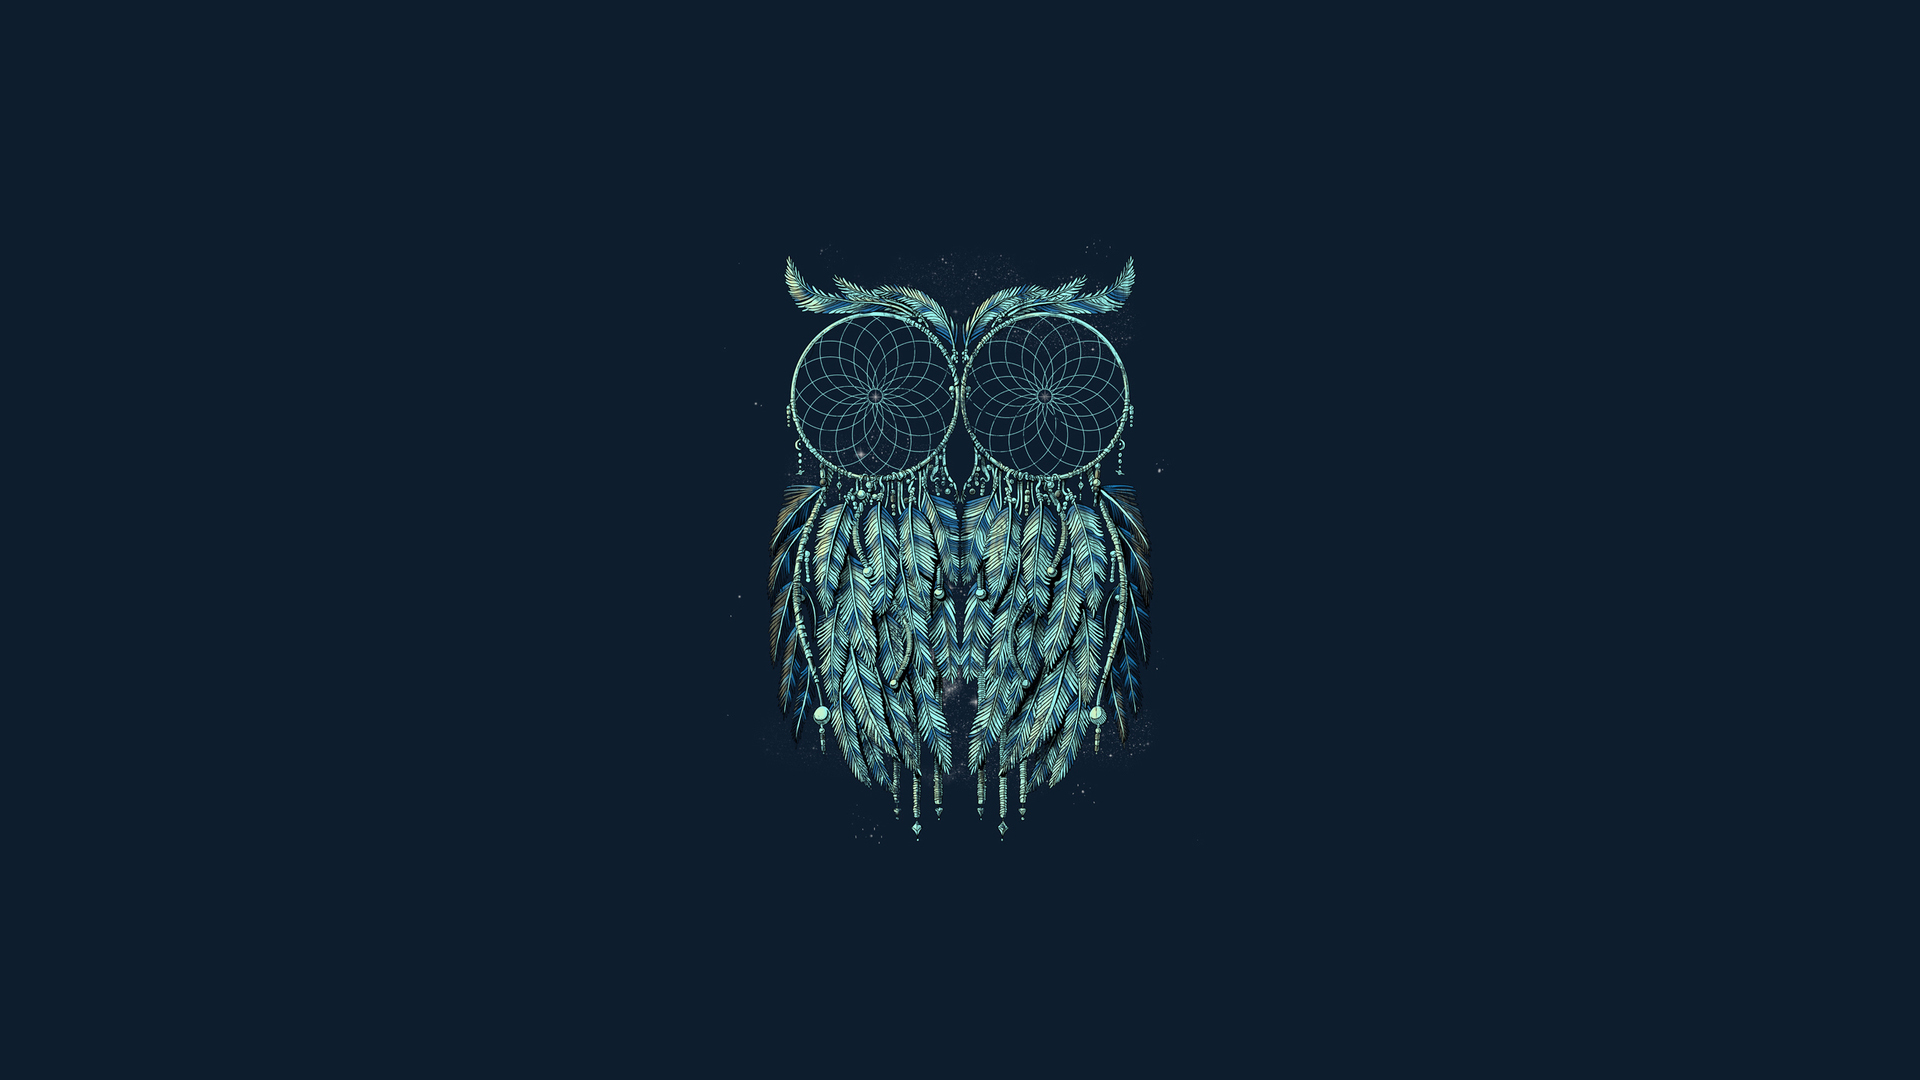 1920x1080 Owl Art Laptop Full Hd 1080p Hd 4k Wallpapers Images Backgrounds Photos And Pictures